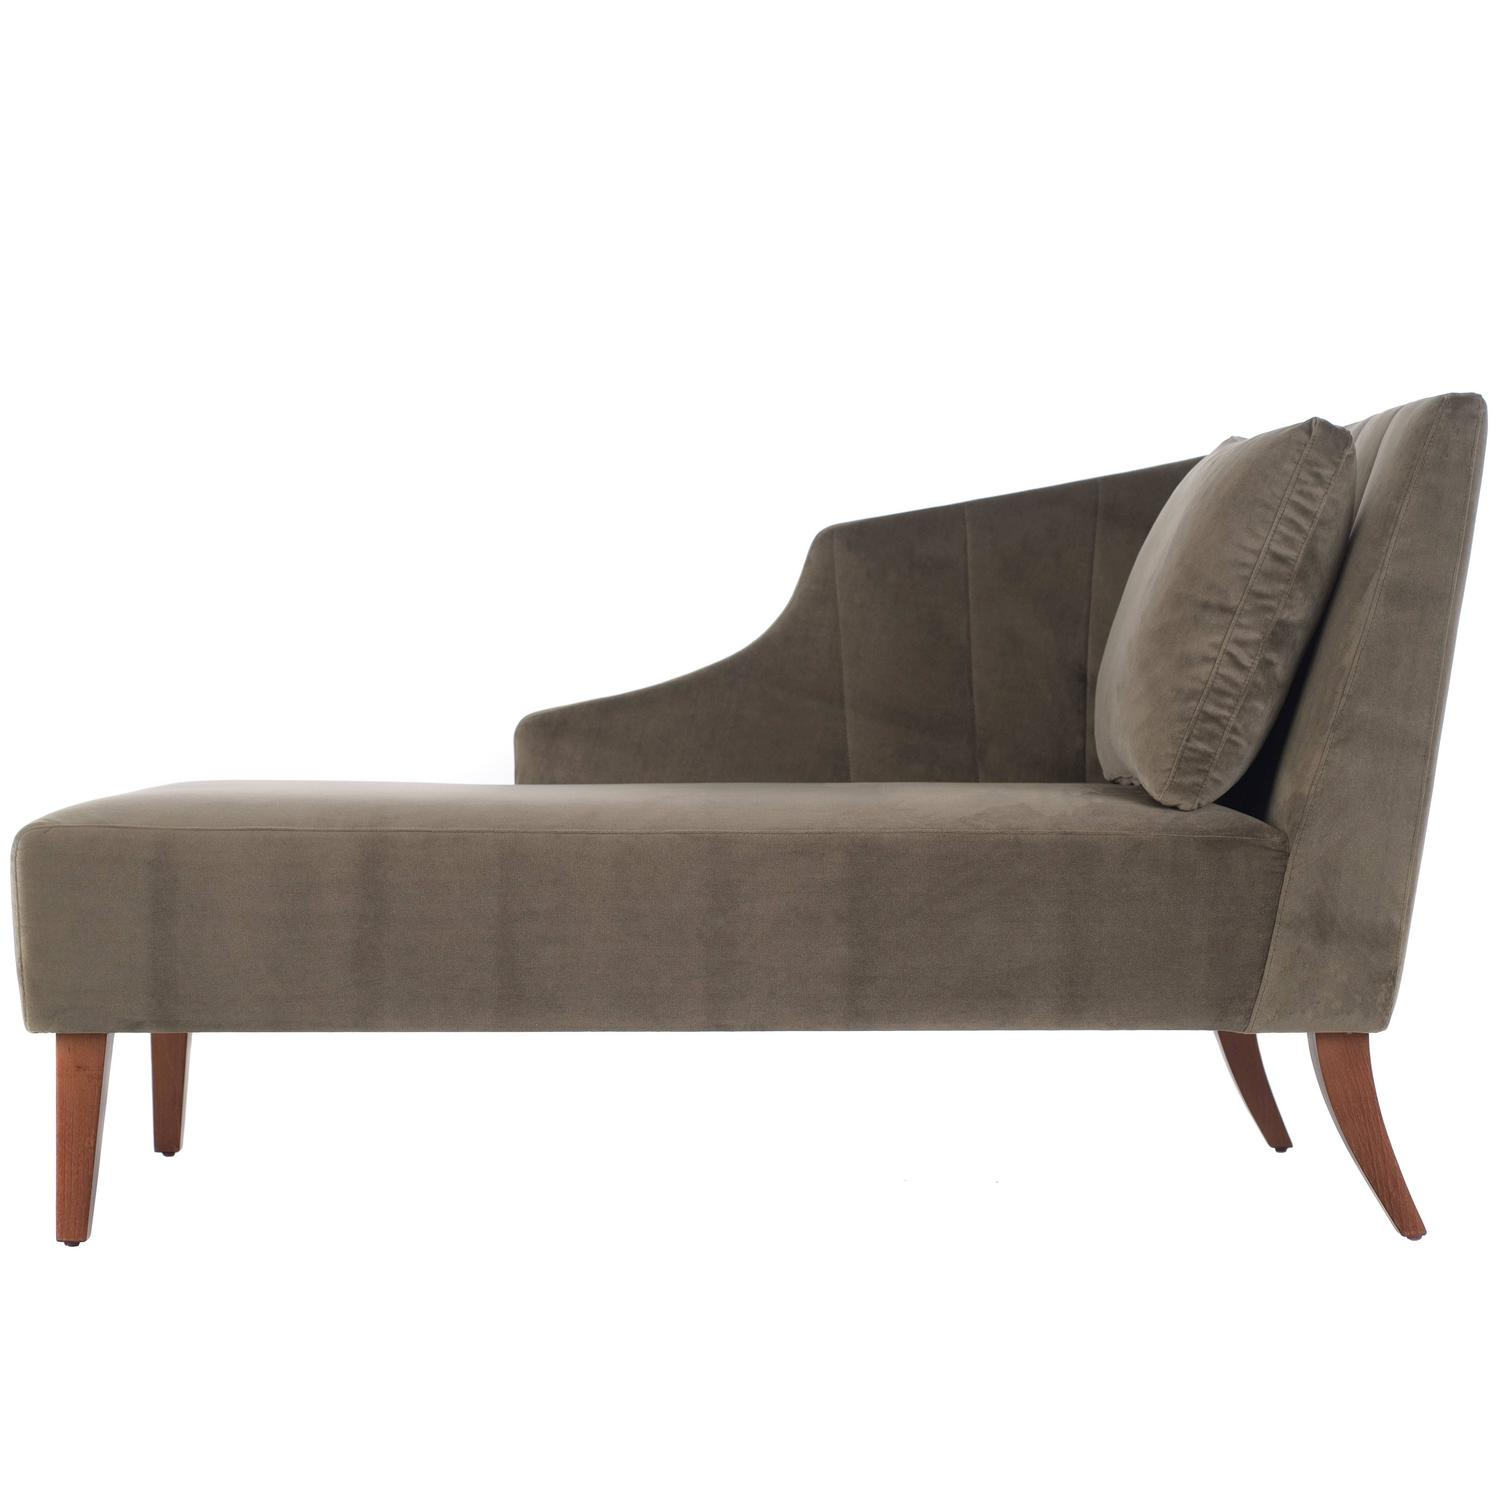 Italian modern grey velvet and ash classic chaise longue for Chaise longue achat